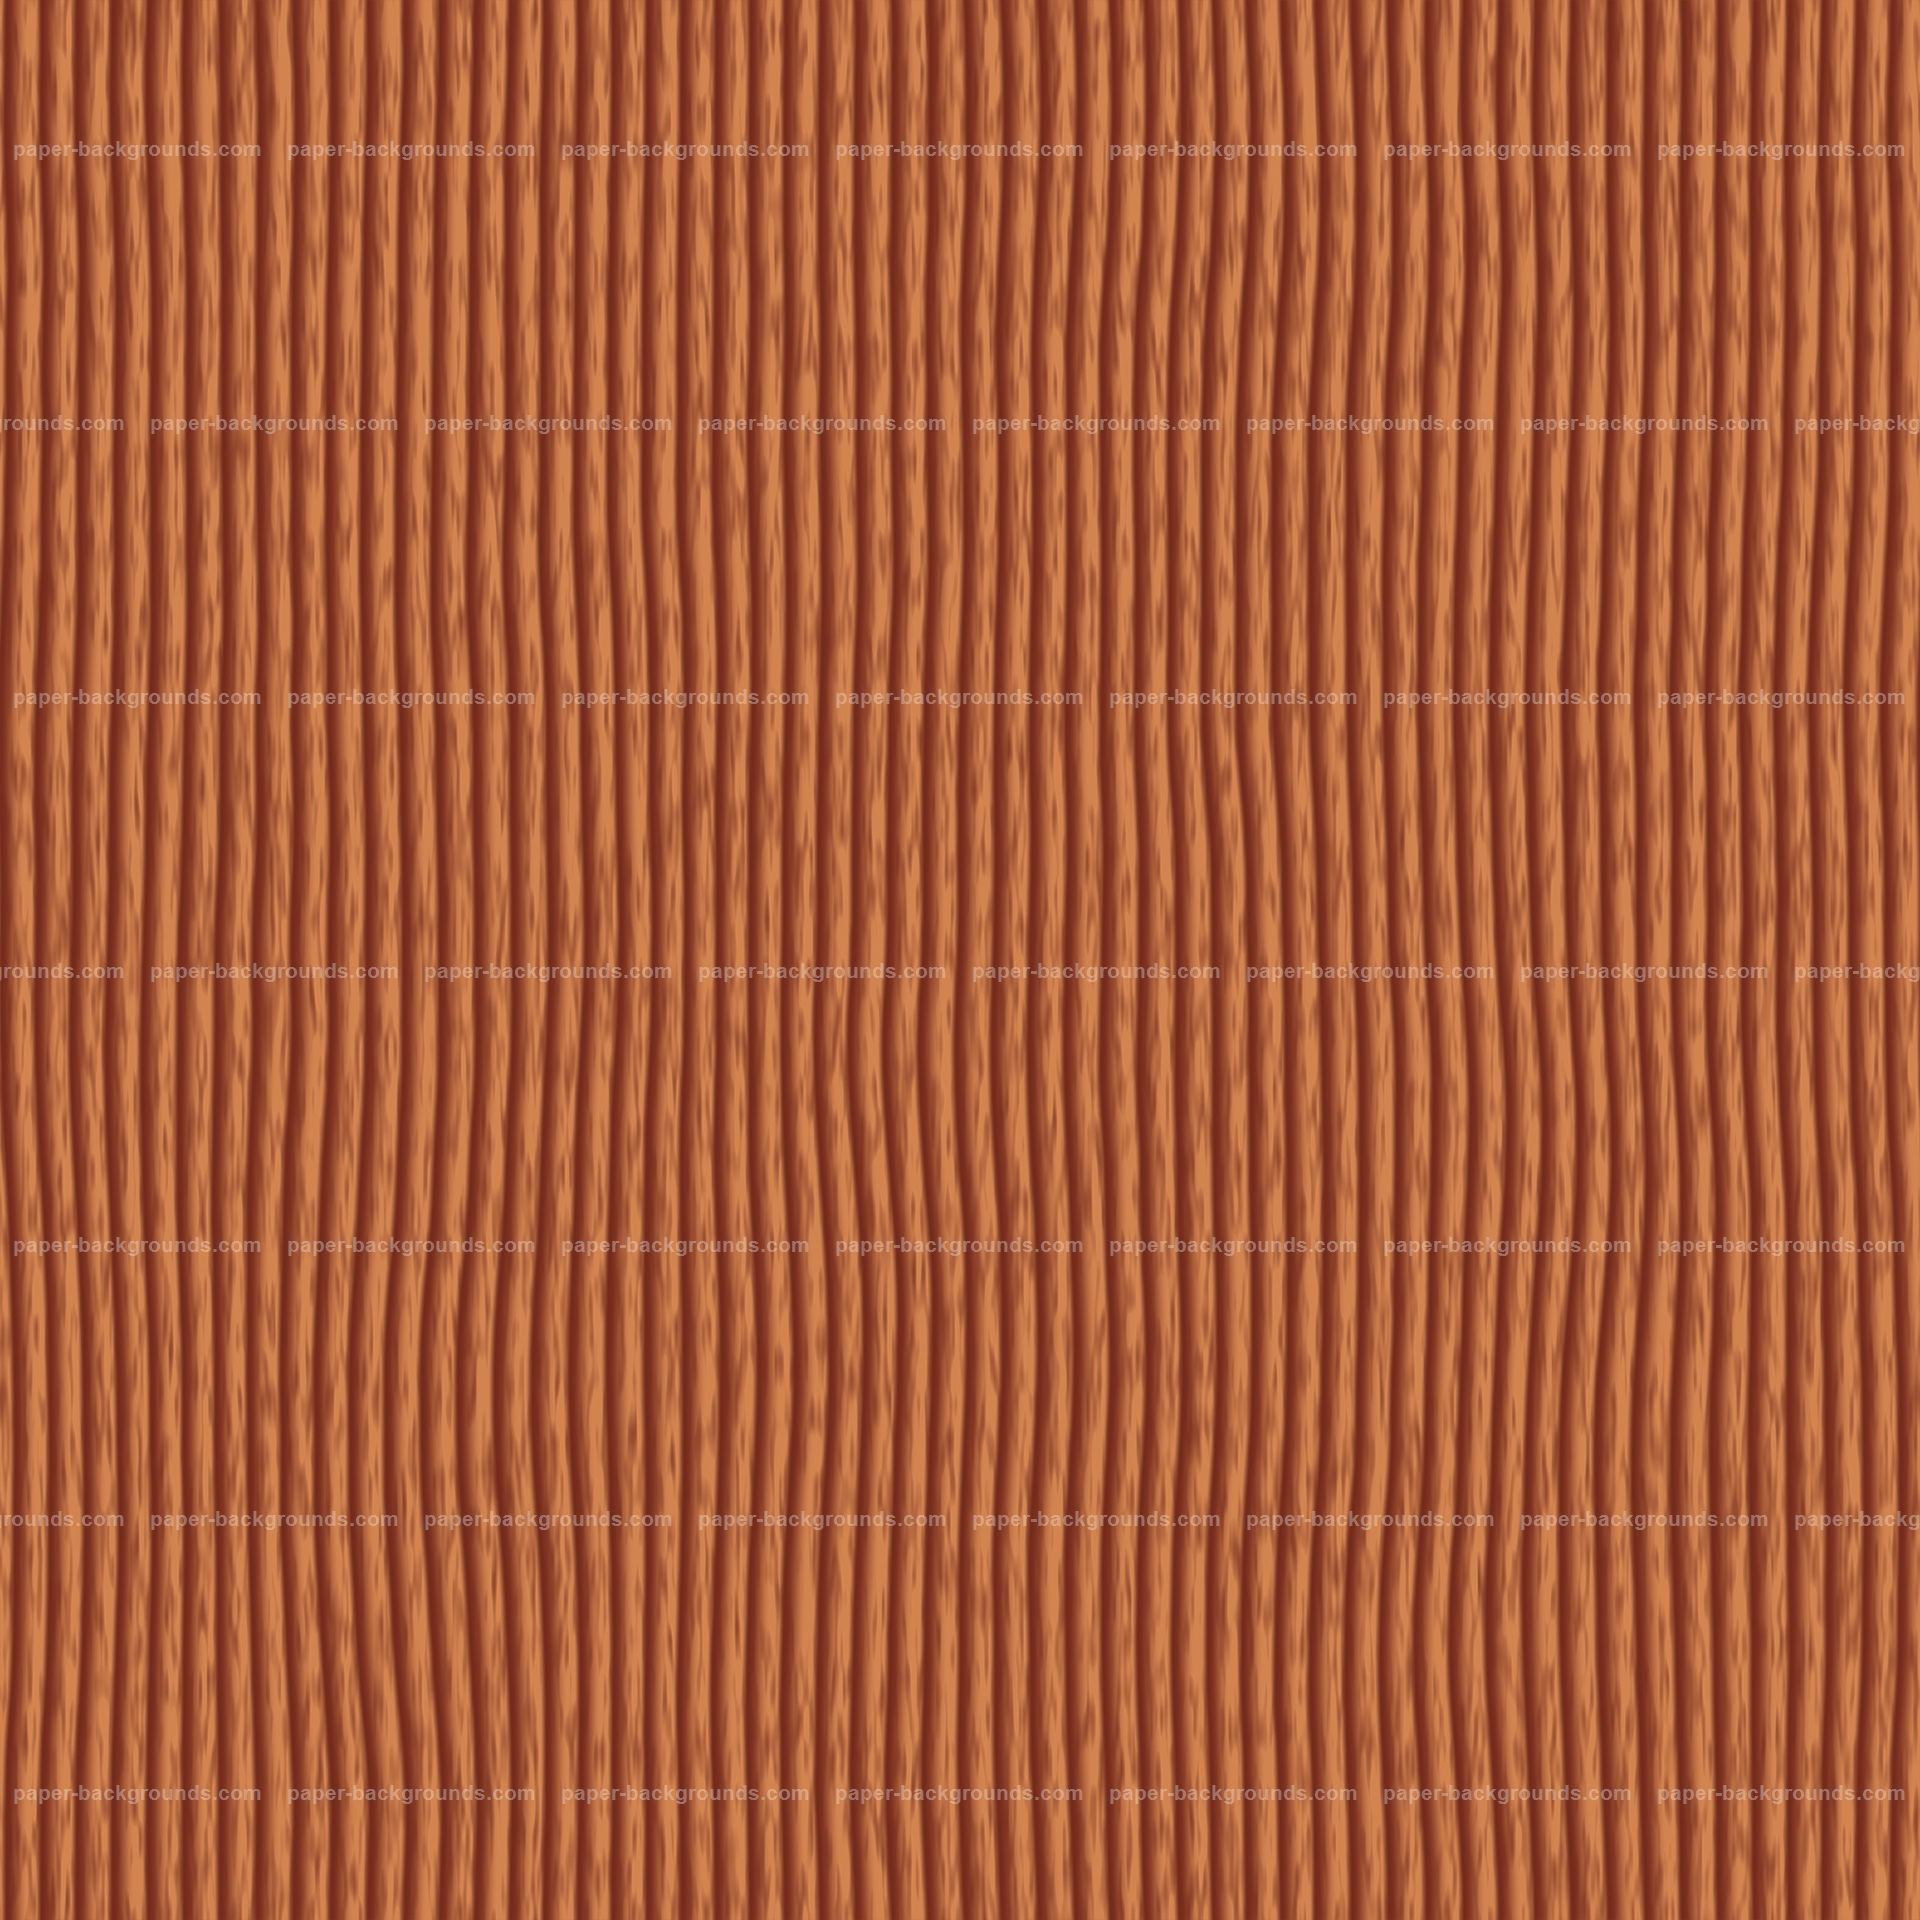 Seamless Brown Wood Cedar Texture HD